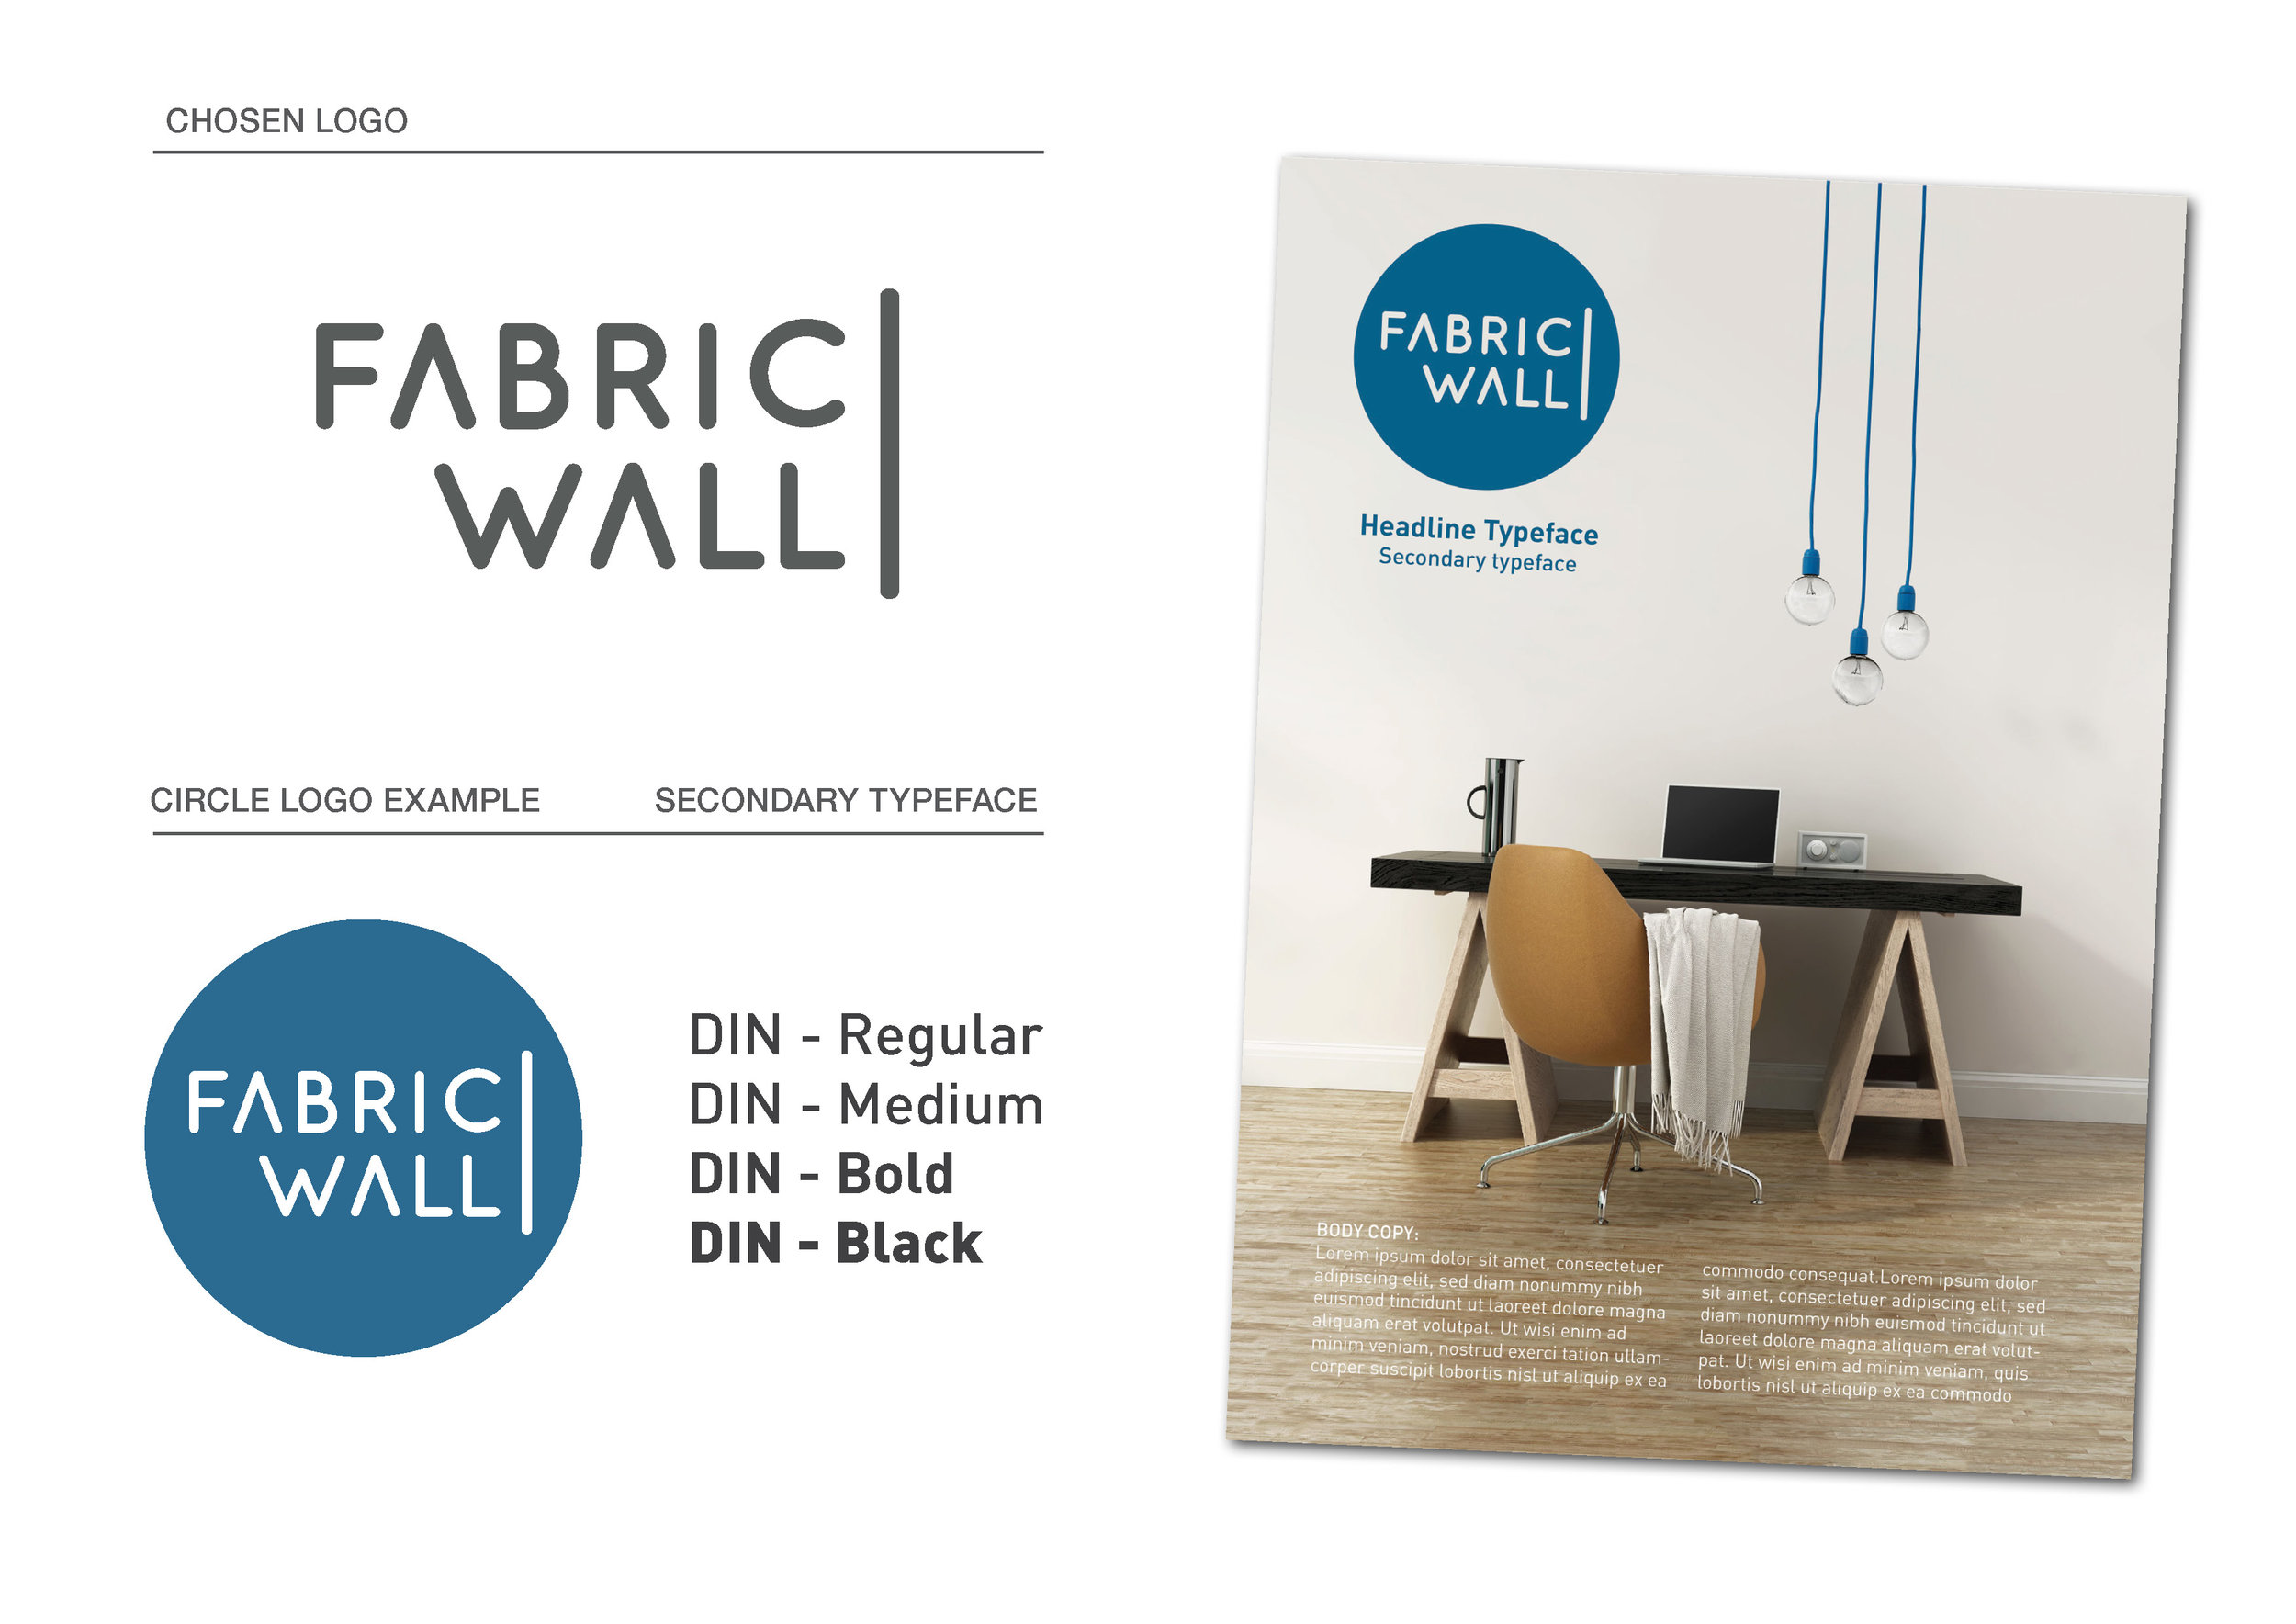 FABRIC WALL CHOSEN LOGO MOCK UP v2_Page_2.jpg